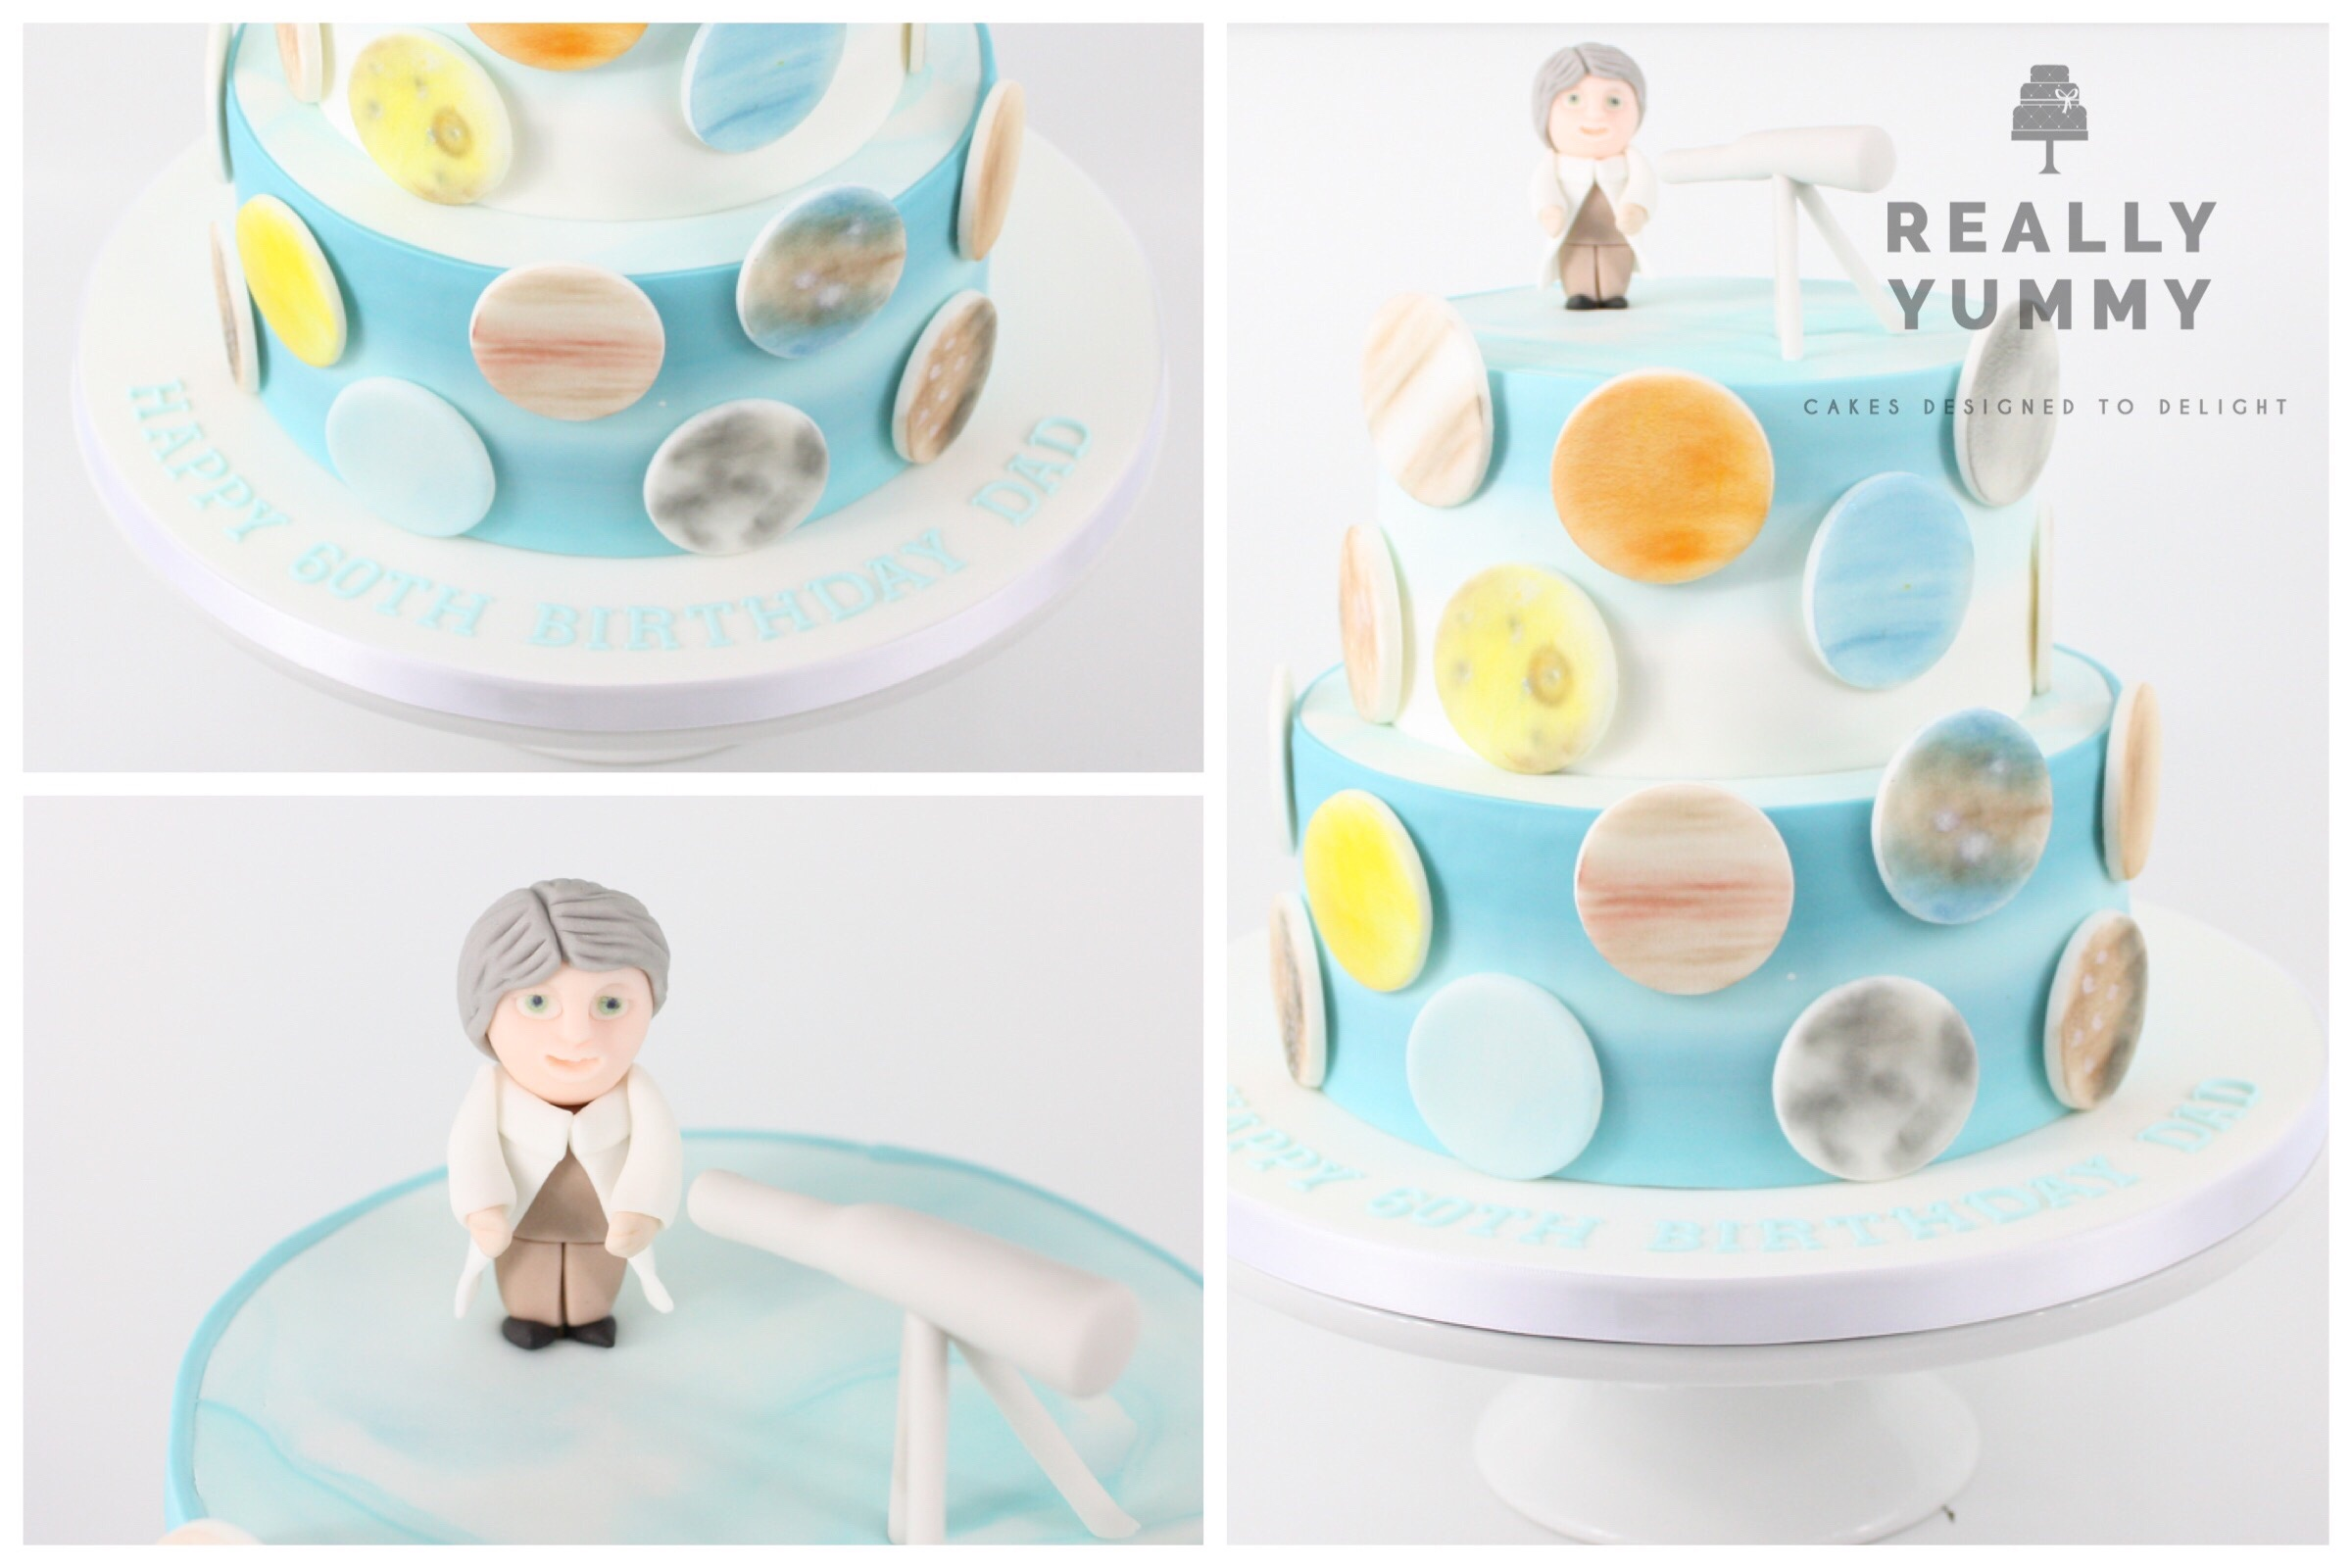 Astronomer's cake with planets and telescope